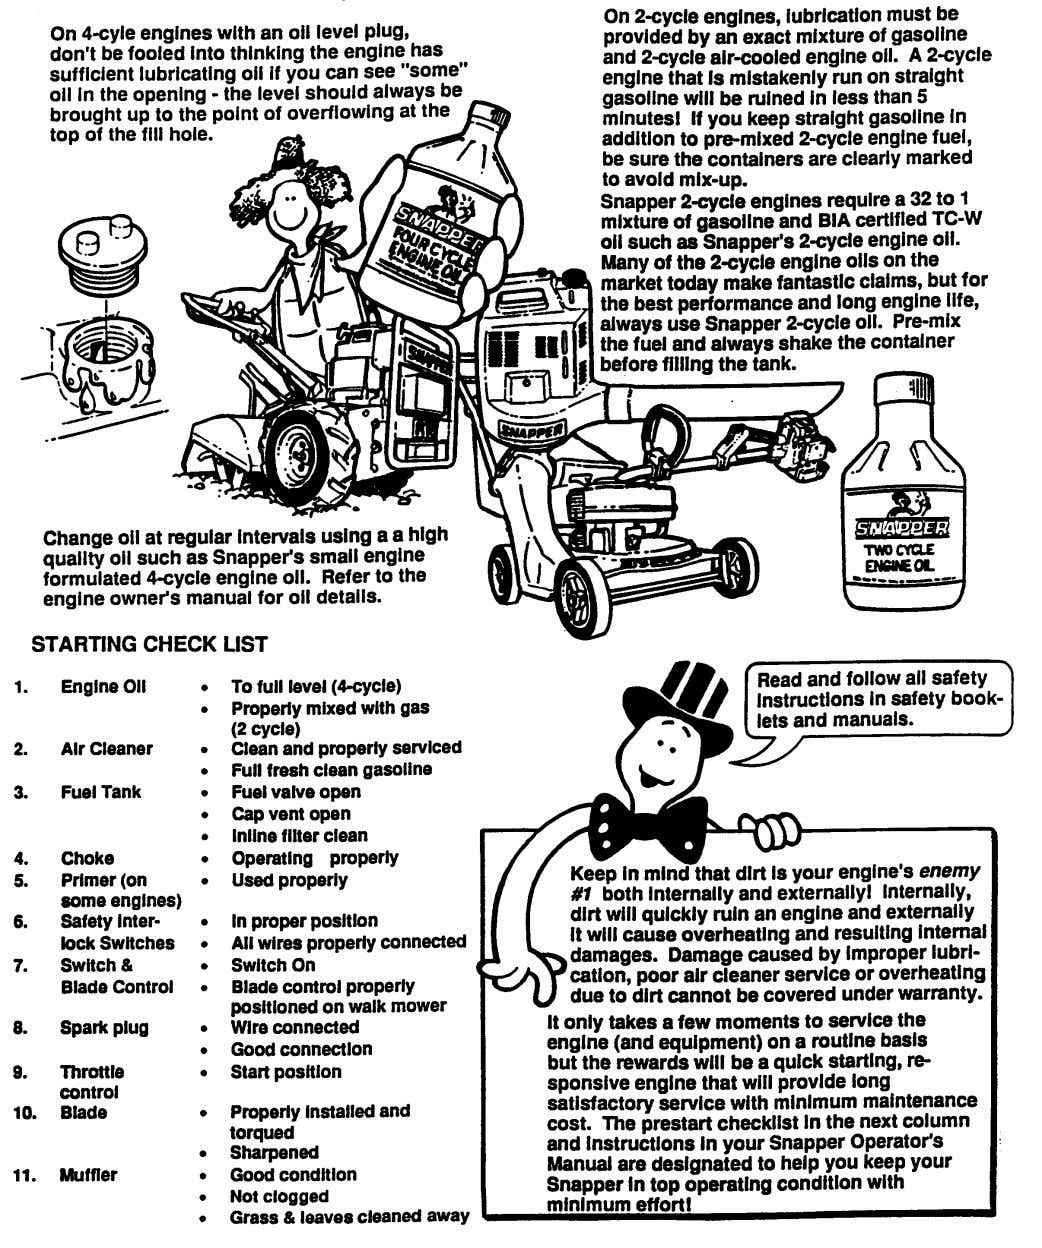 PRIMARY MAINTENANCE 28 Downloaded from www.Manualslib.com manuals search engine